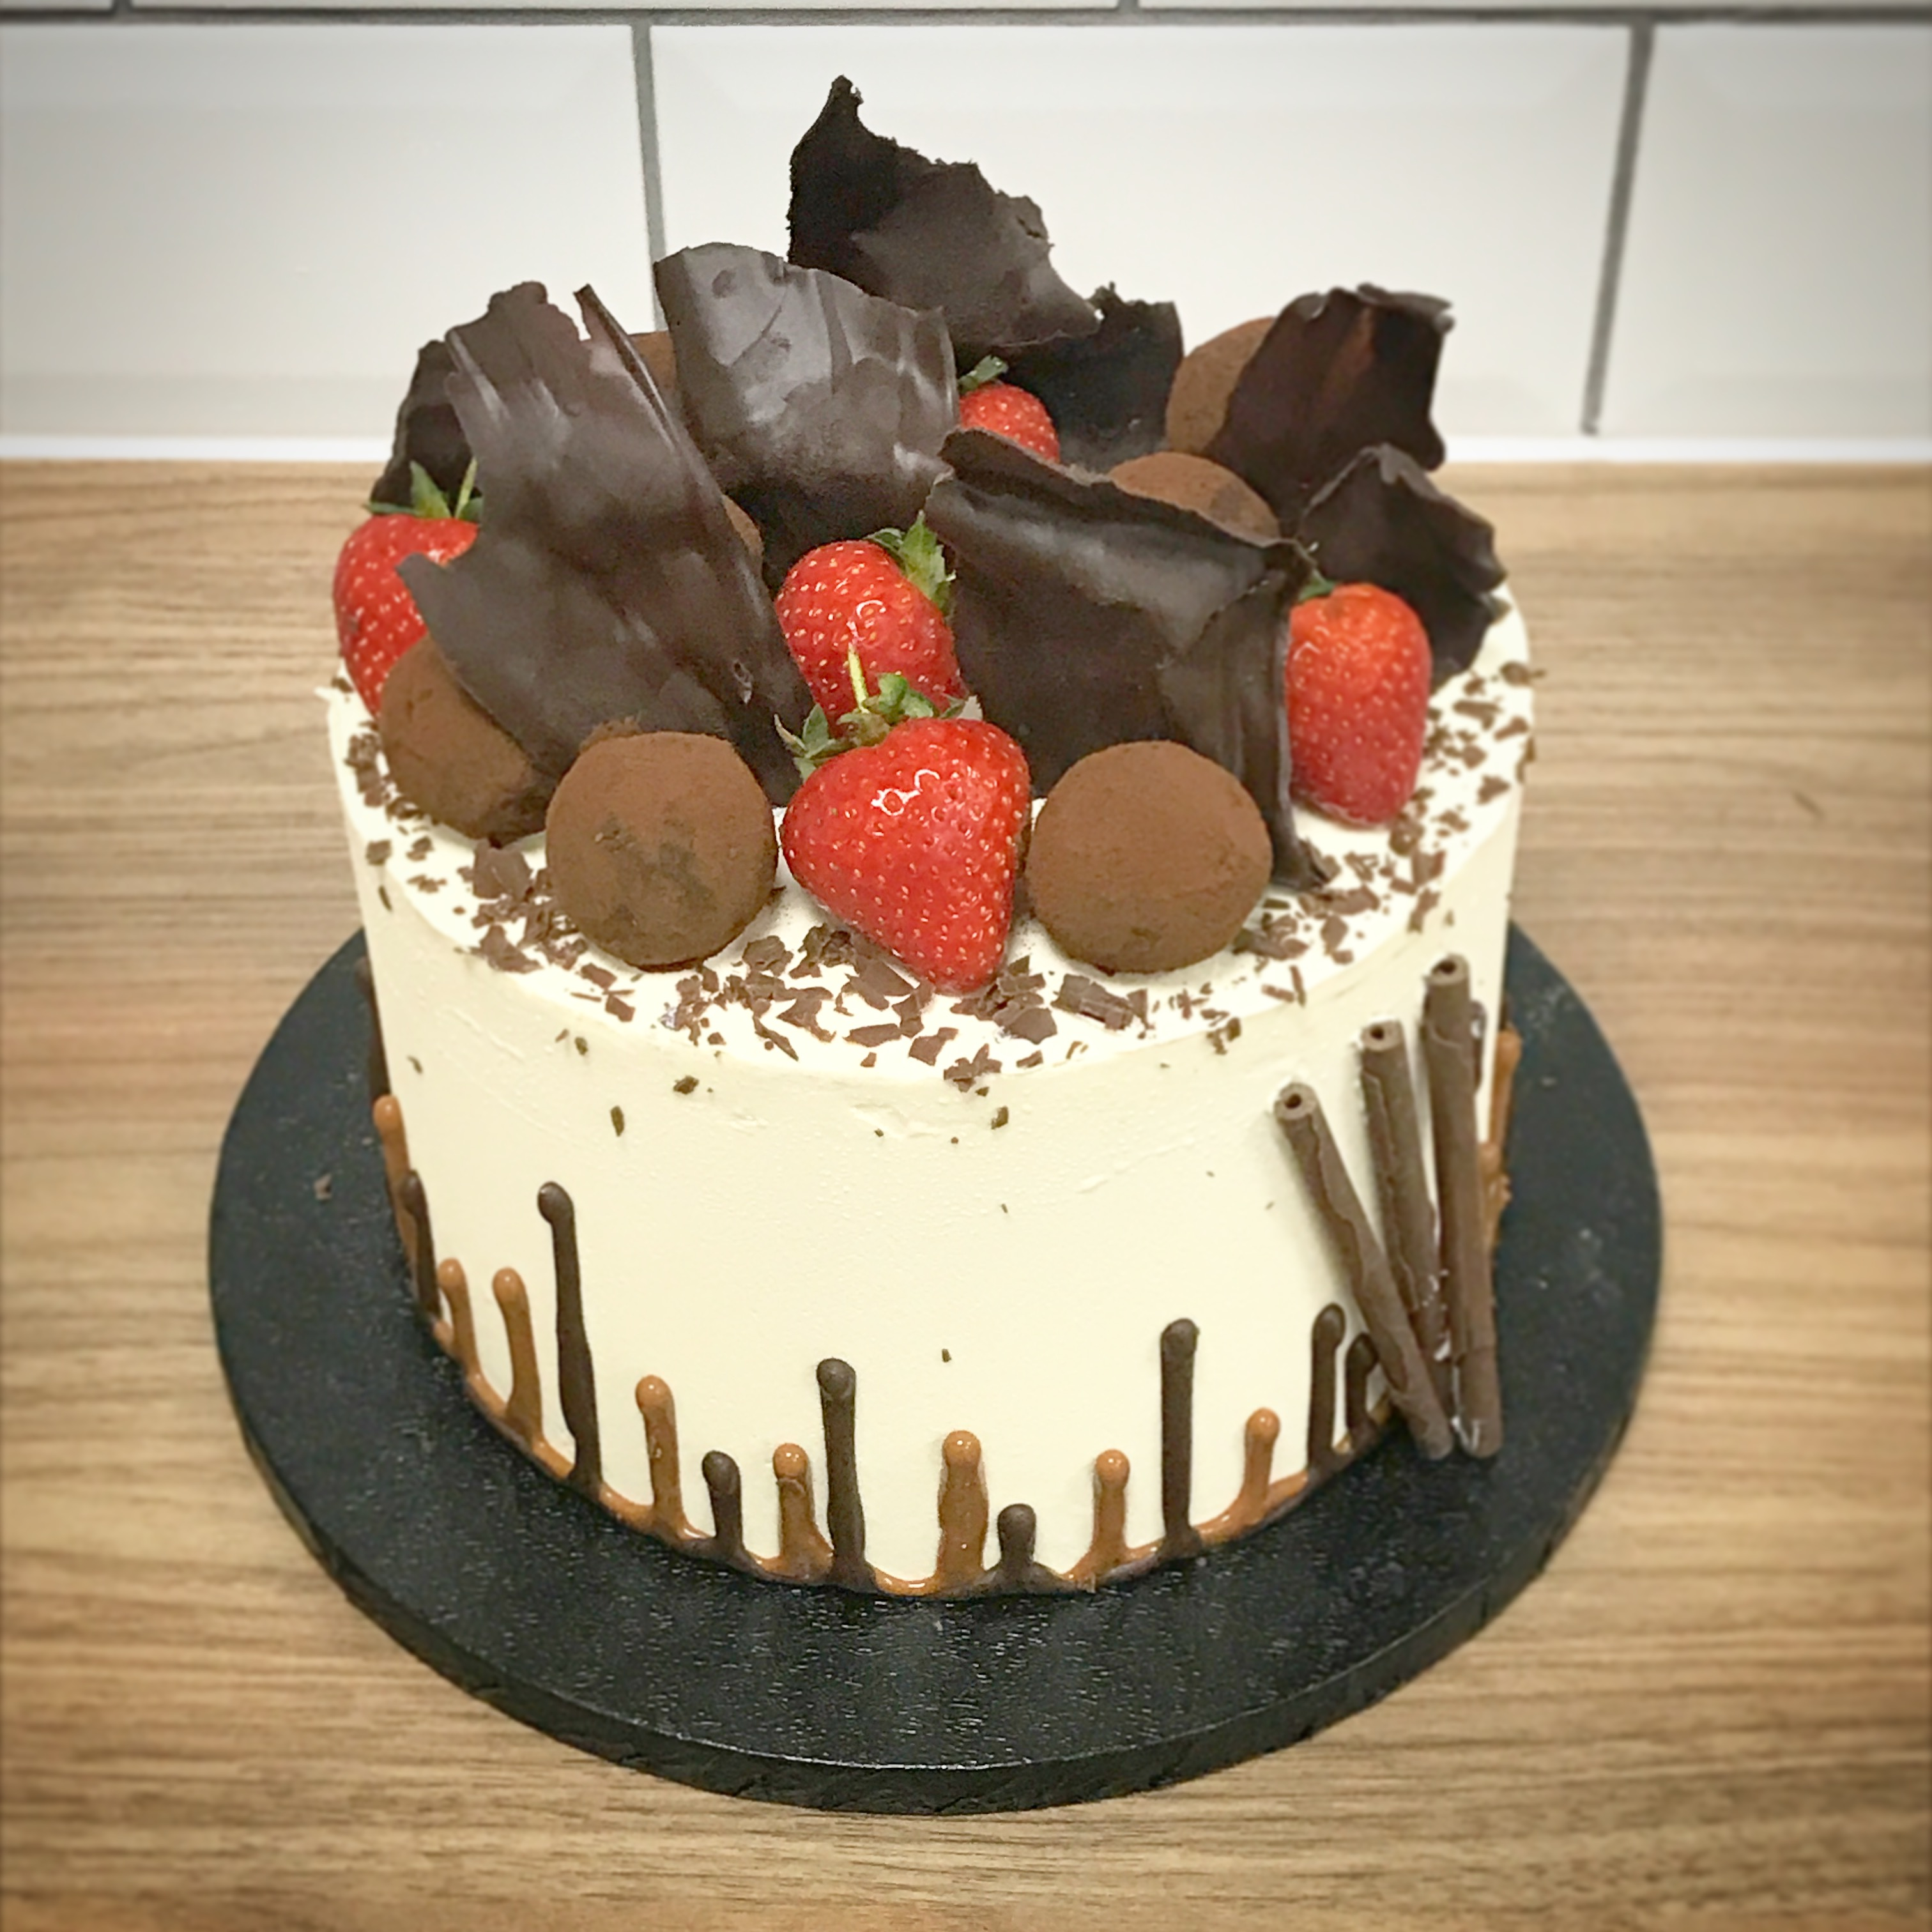 Upsidedown Drip Cake with Chocolate Sails, Homemade Truffles and Strawberries